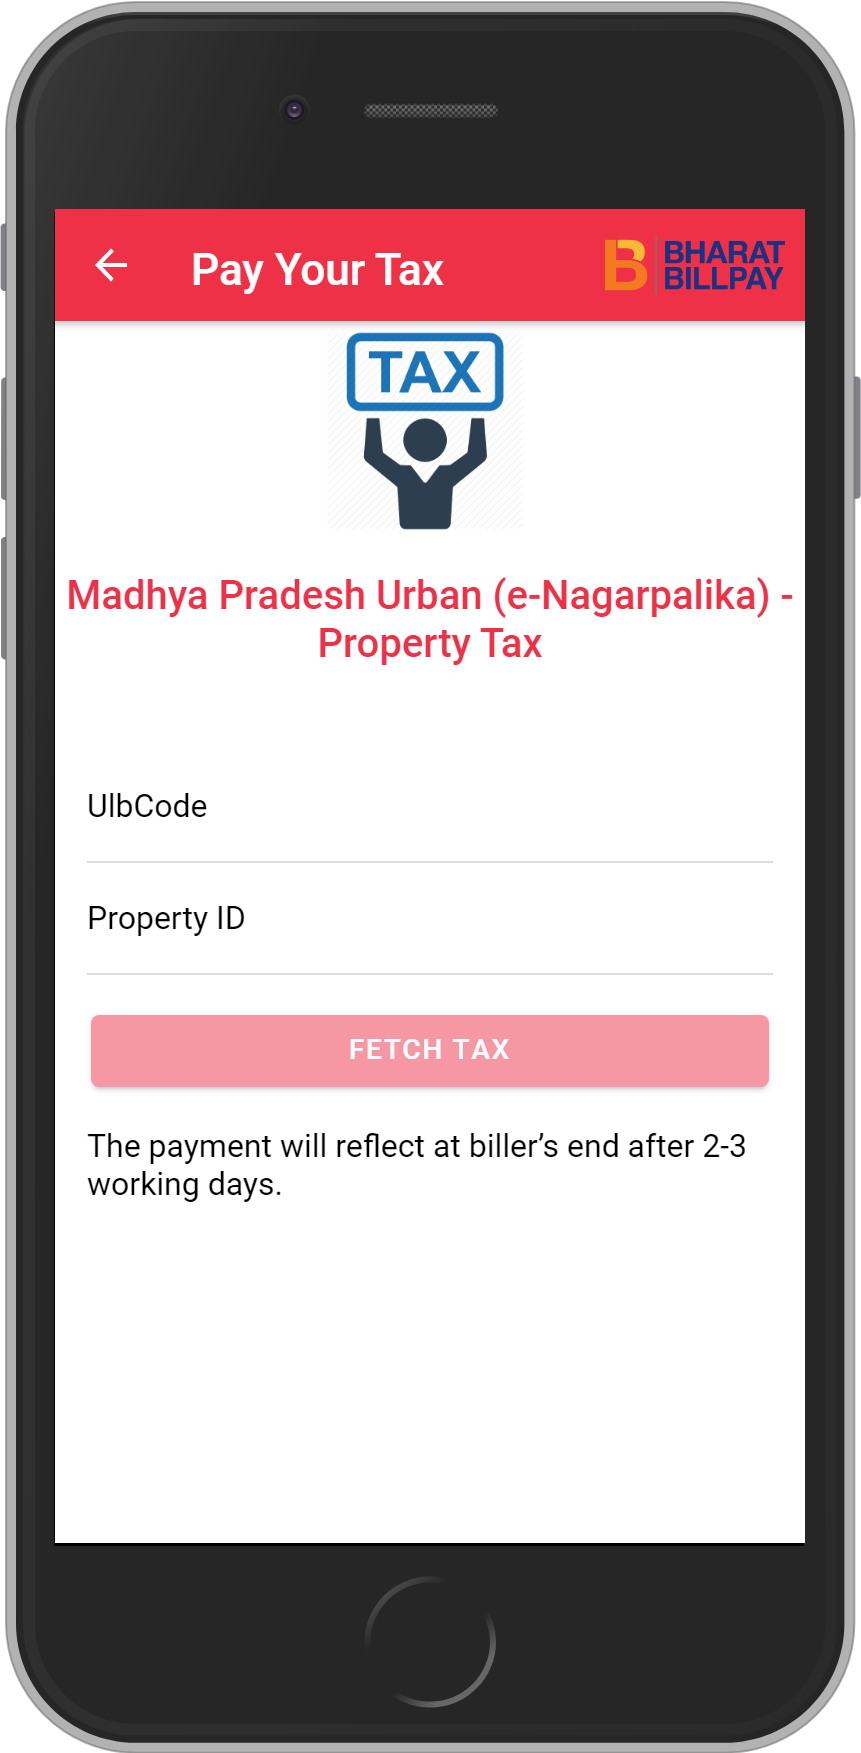 Get UNLIMITED <b>0.1%</b> CASHBACK on Madhya Pradesh Urban (e-Nagarpalika) – Property Tax Recharges.